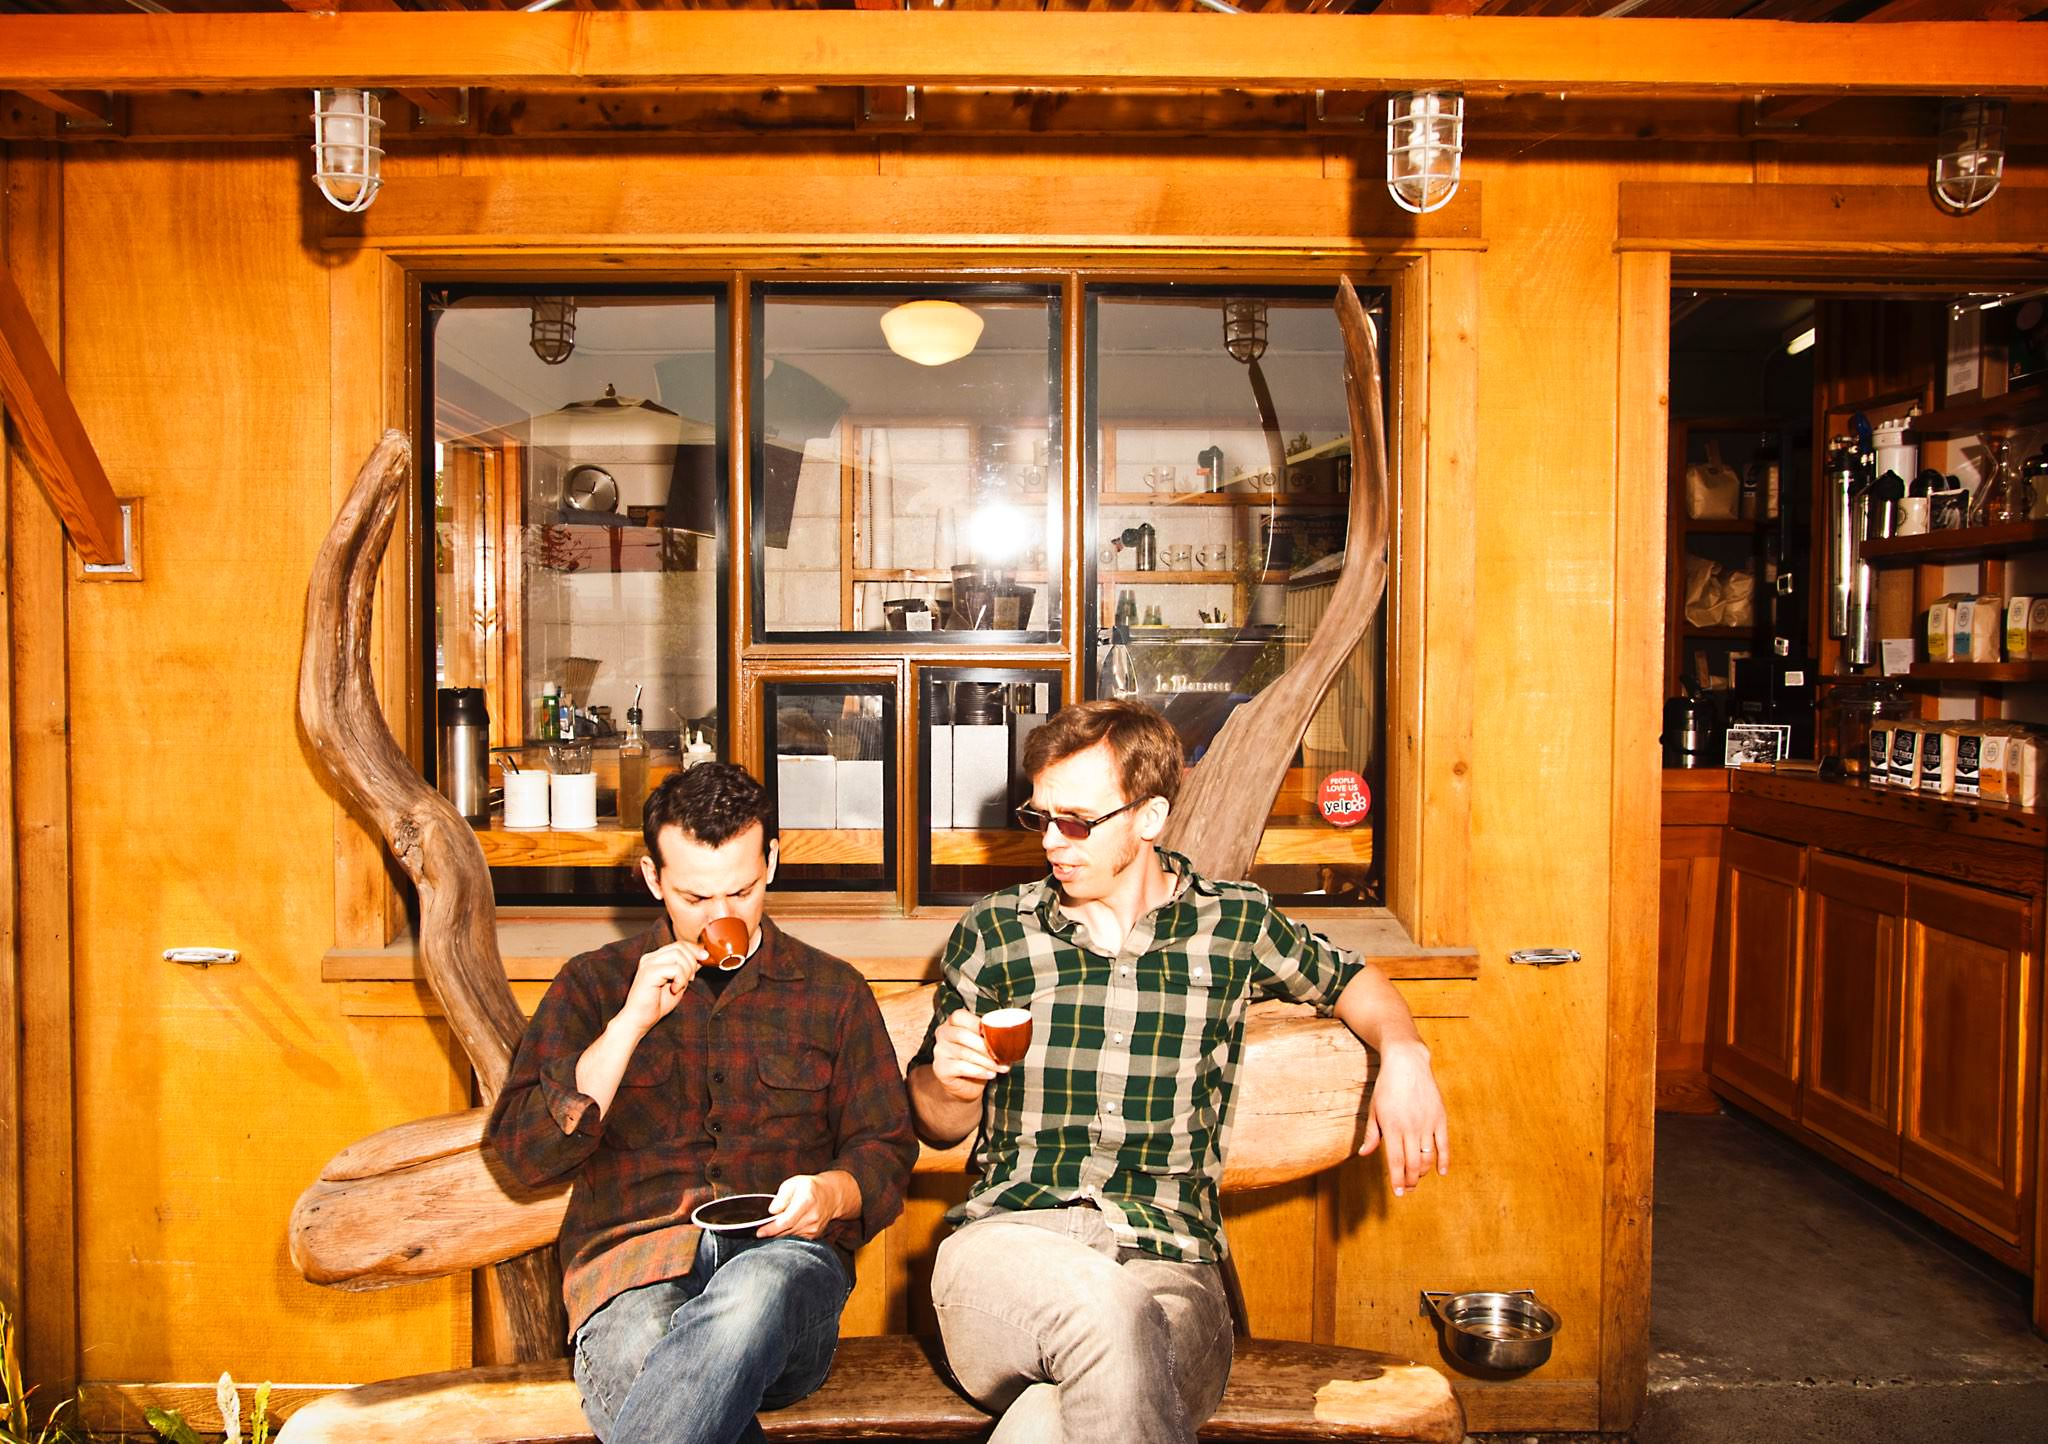 Co-Owners of Olympia Coffee Roasters, Oliver Stormshak (left) and Sam Schroeder (right).